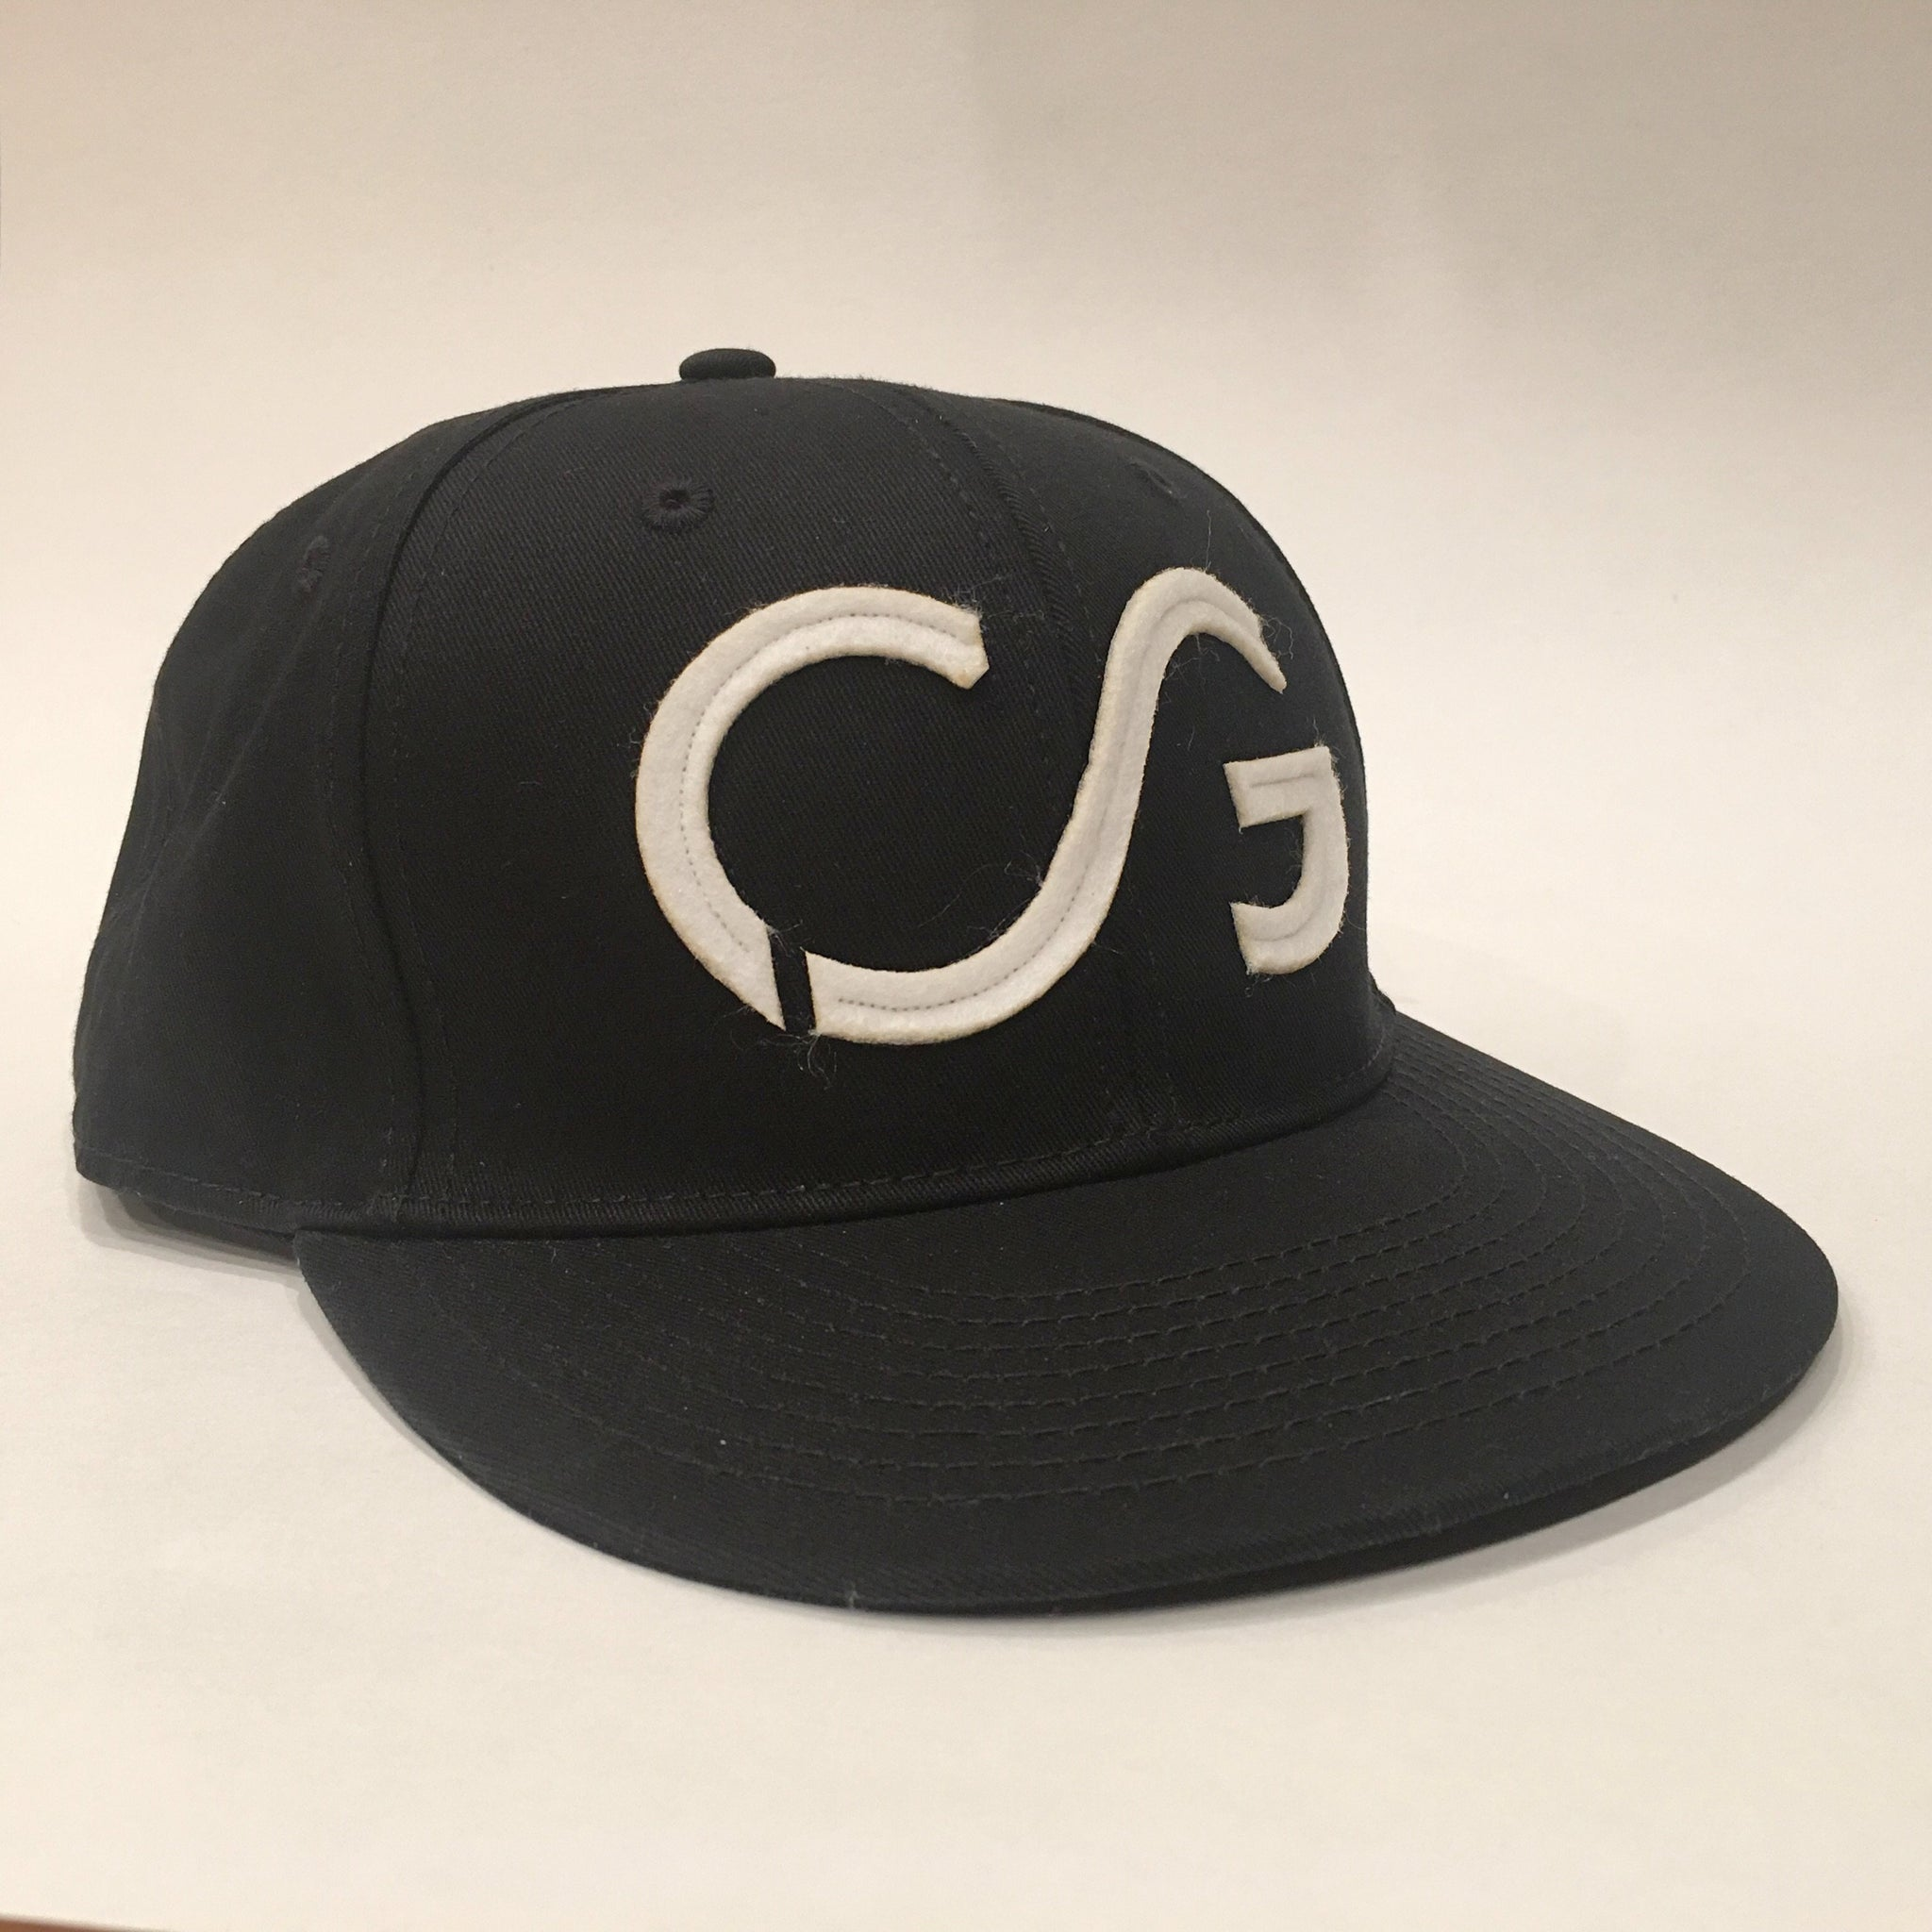 Black flatbrim with white felt CG